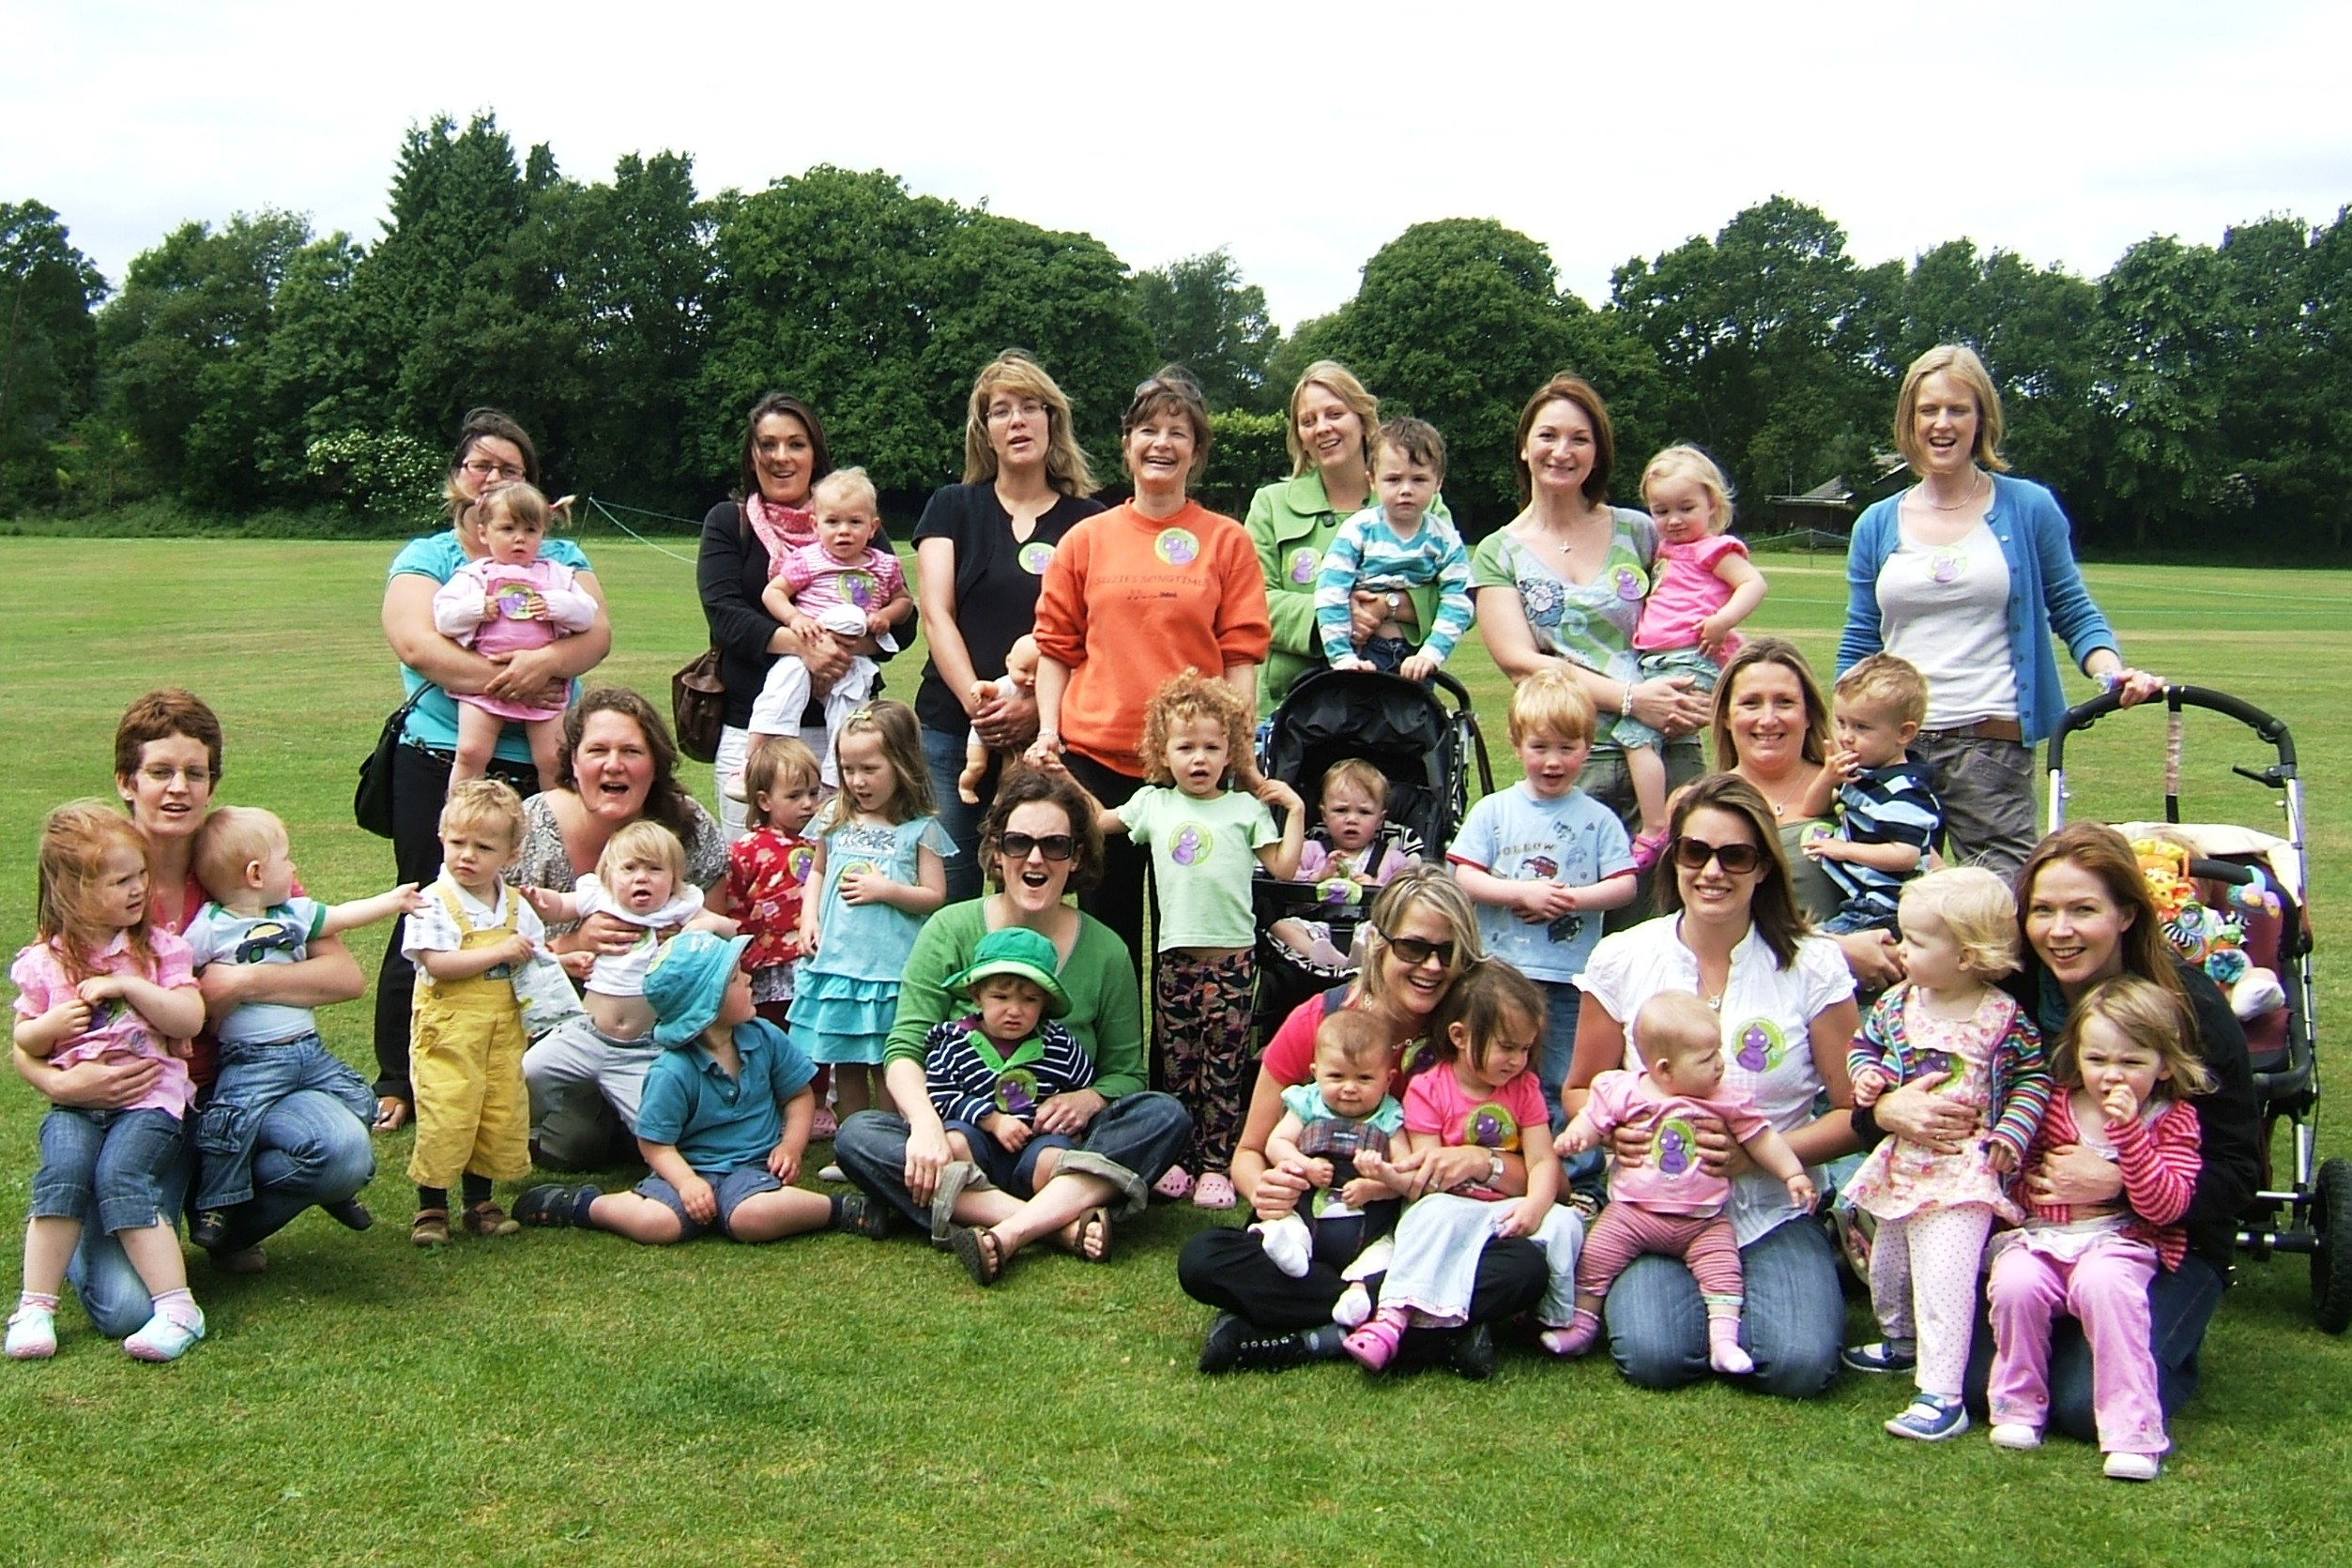 toddle2009.jpg